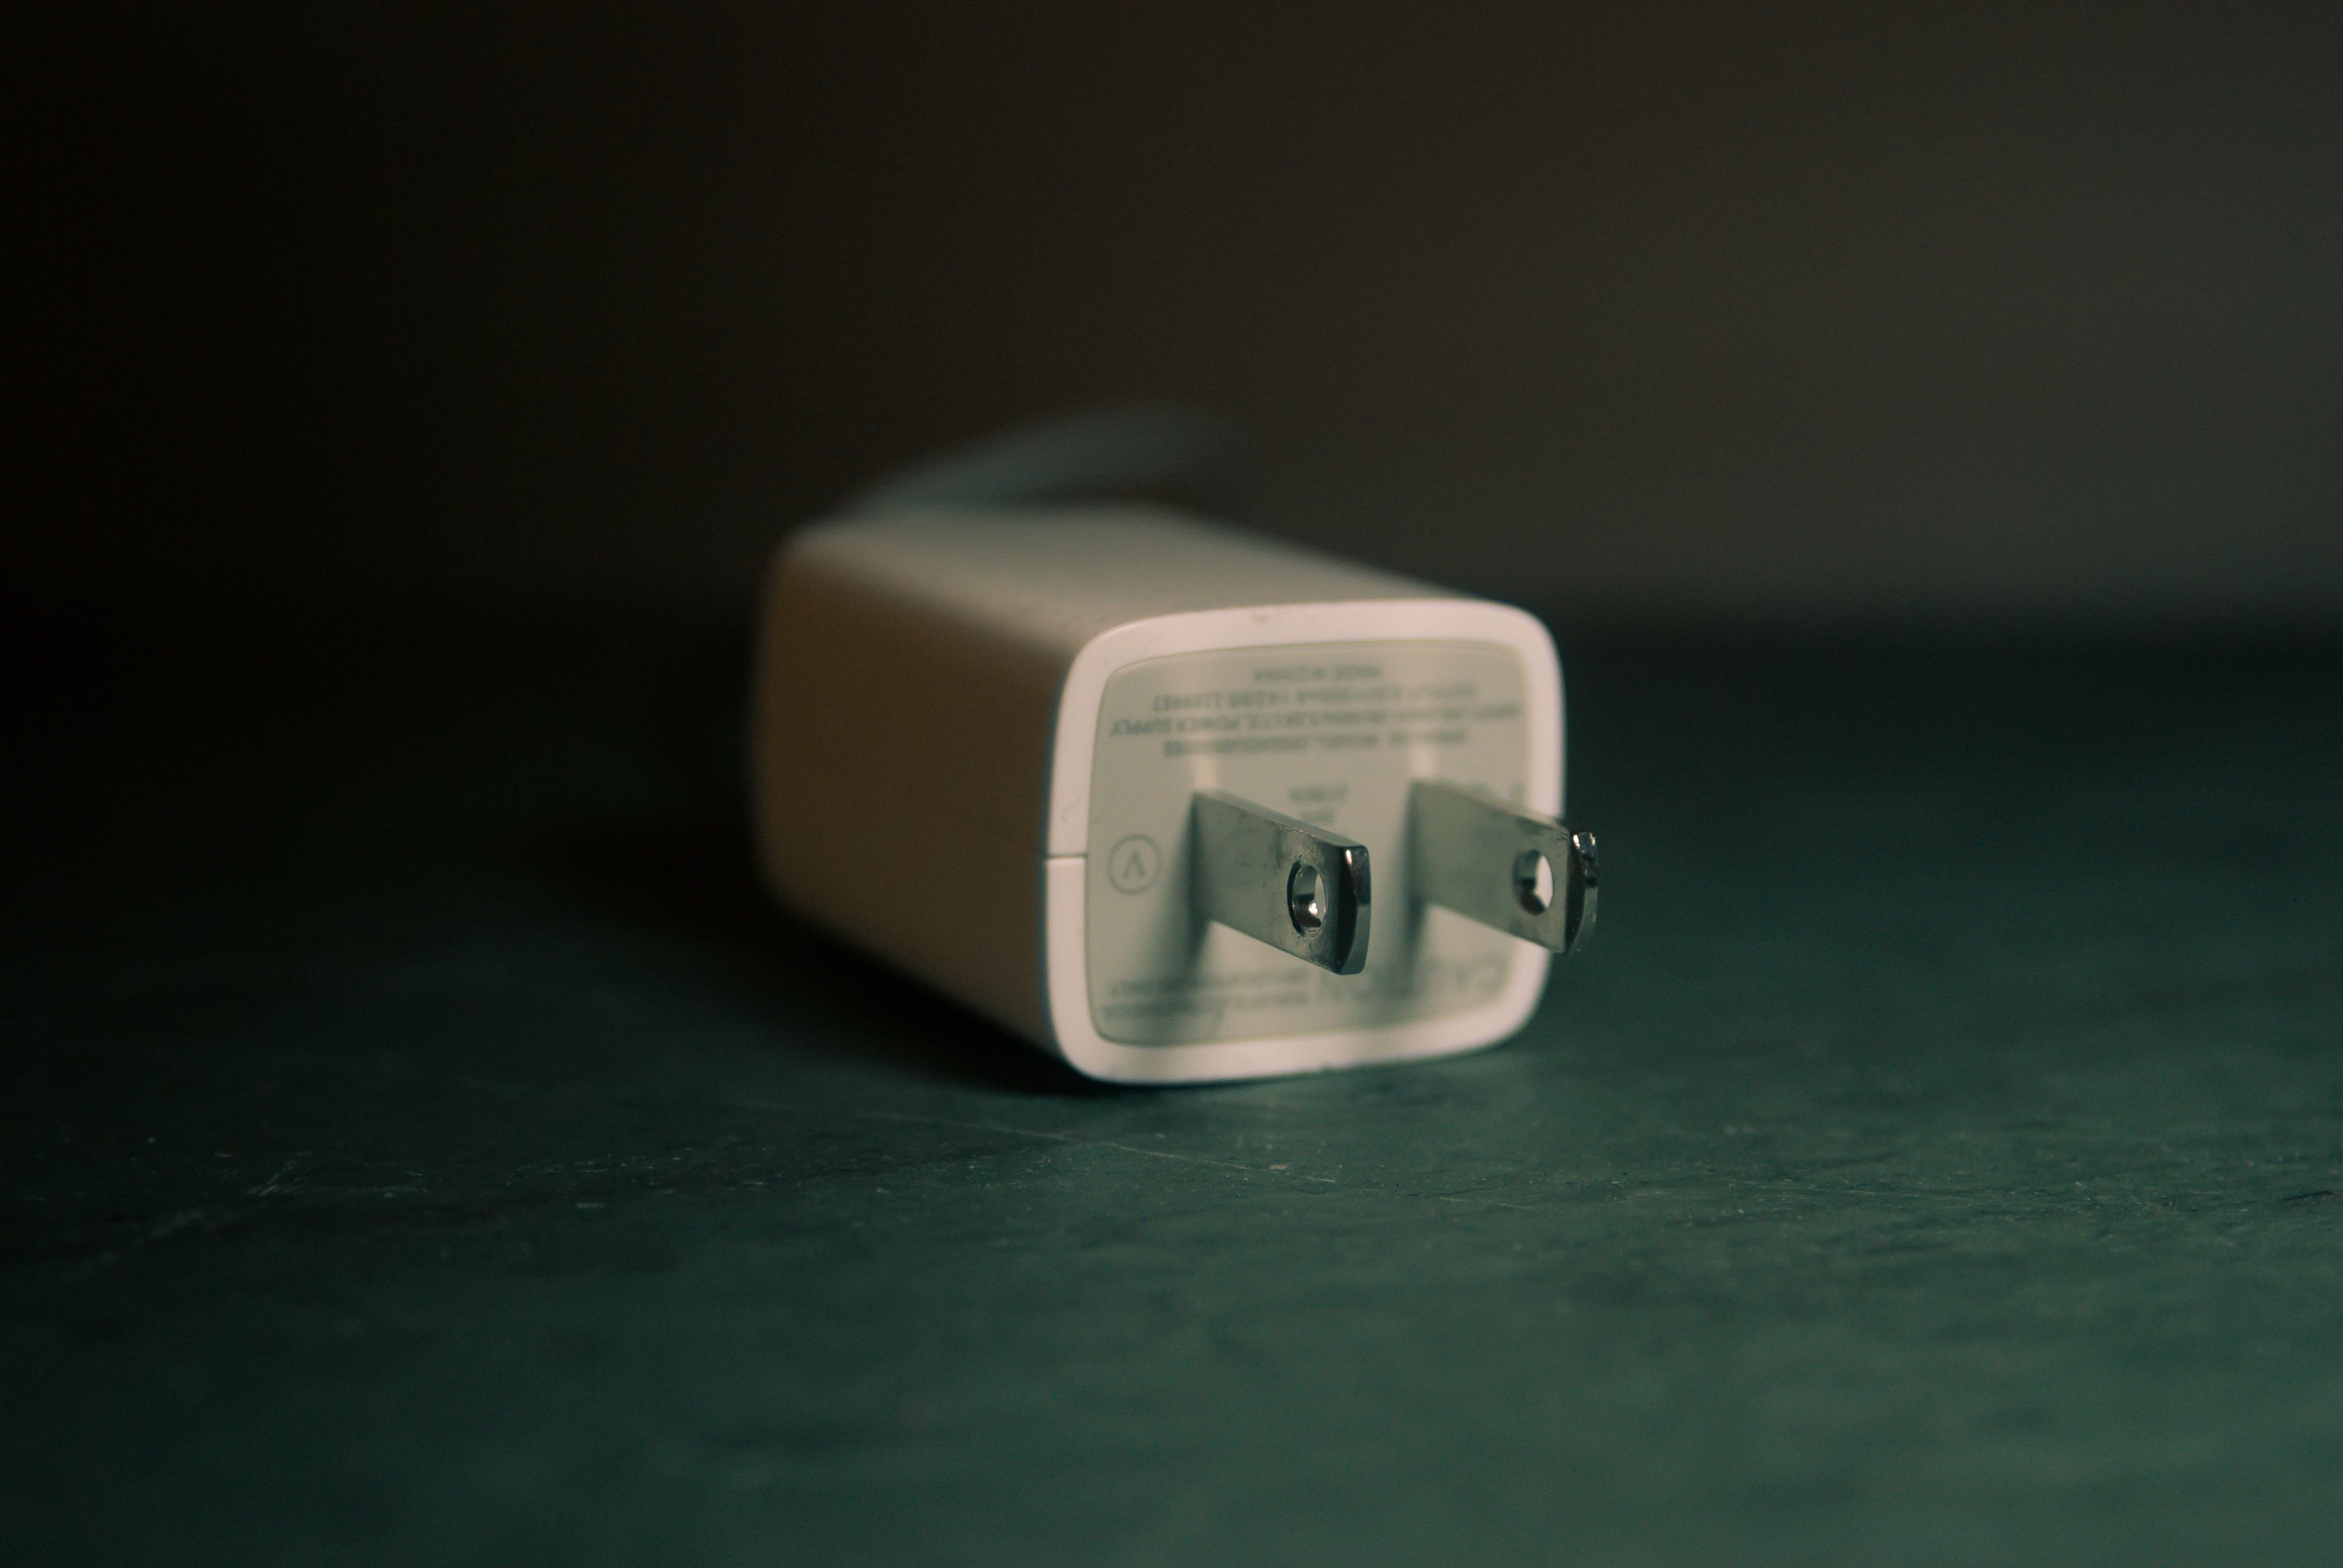 White Travel Adapter